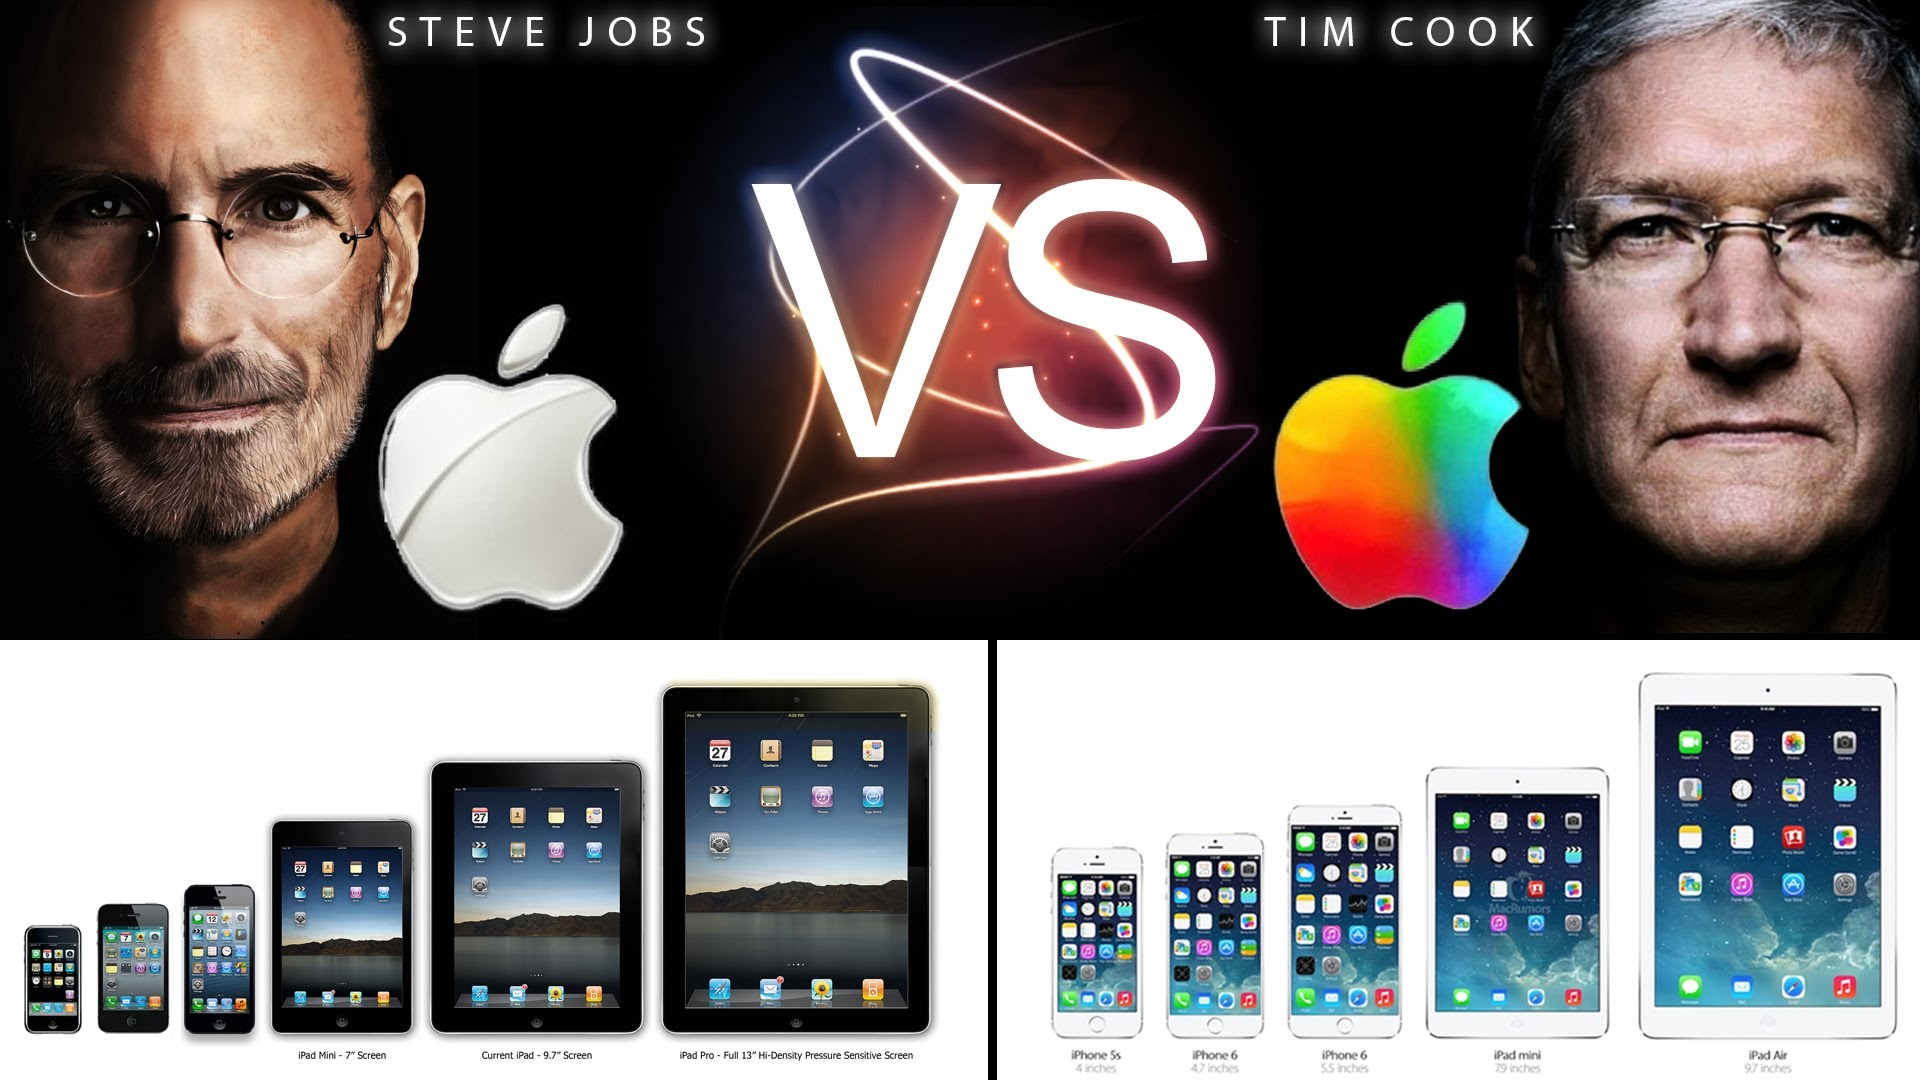 steve jobs vs tim cook history strategyofapple. Black Bedroom Furniture Sets. Home Design Ideas